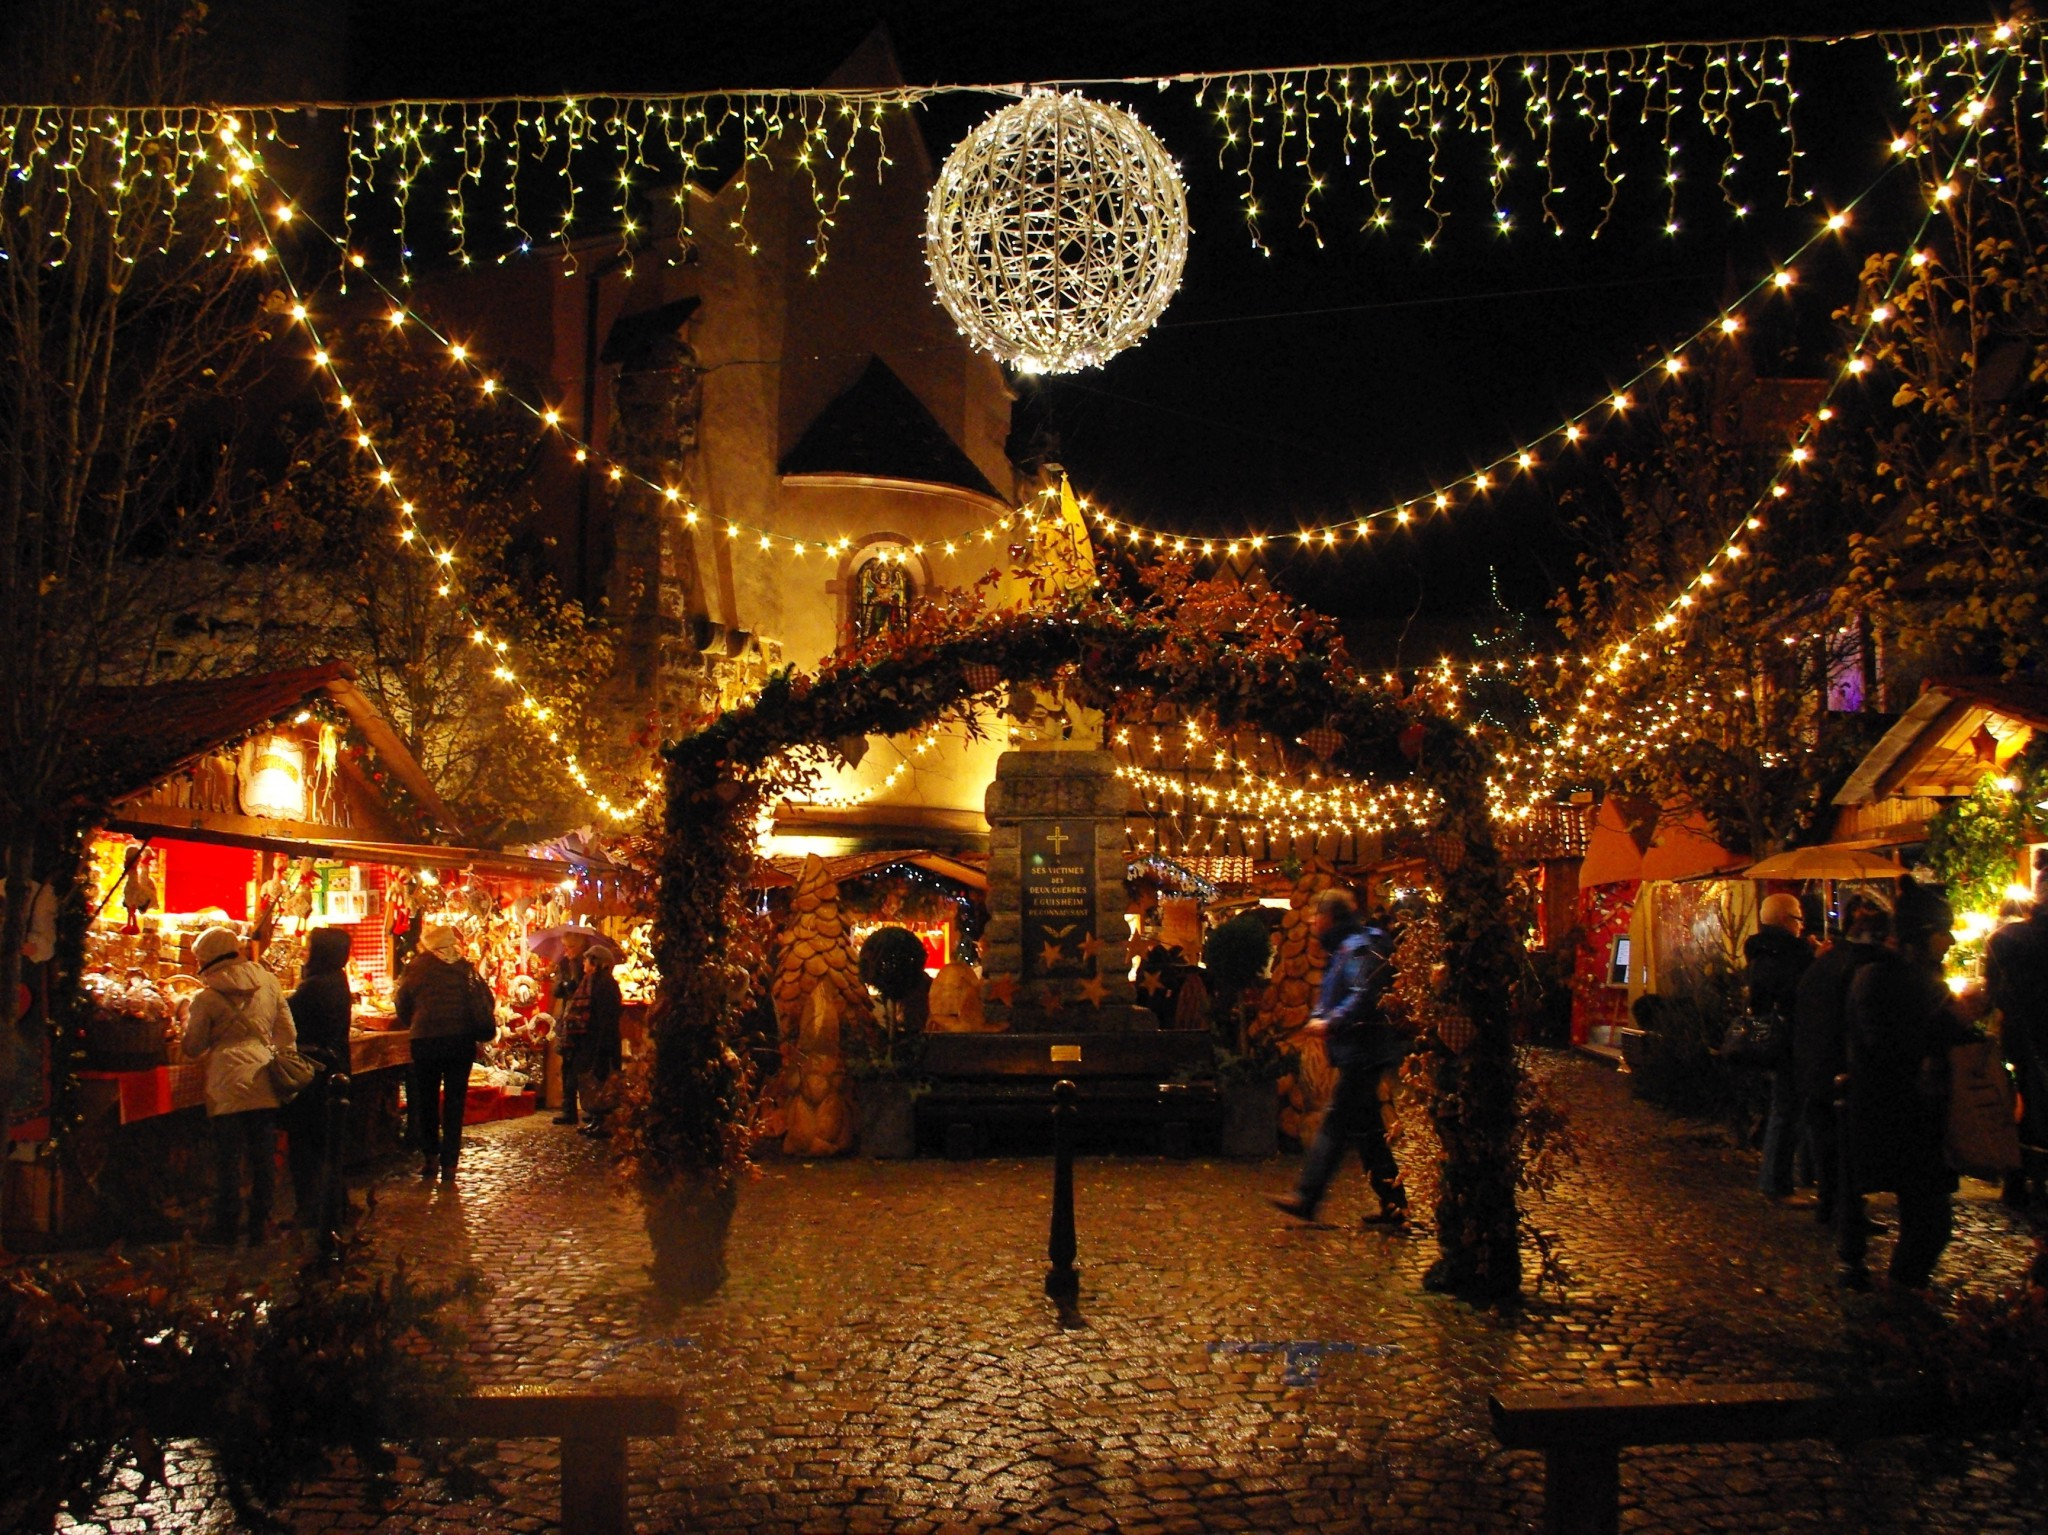 Eguisheim Christmas market - Most Beautiful Christmas Markets in France © French Moments